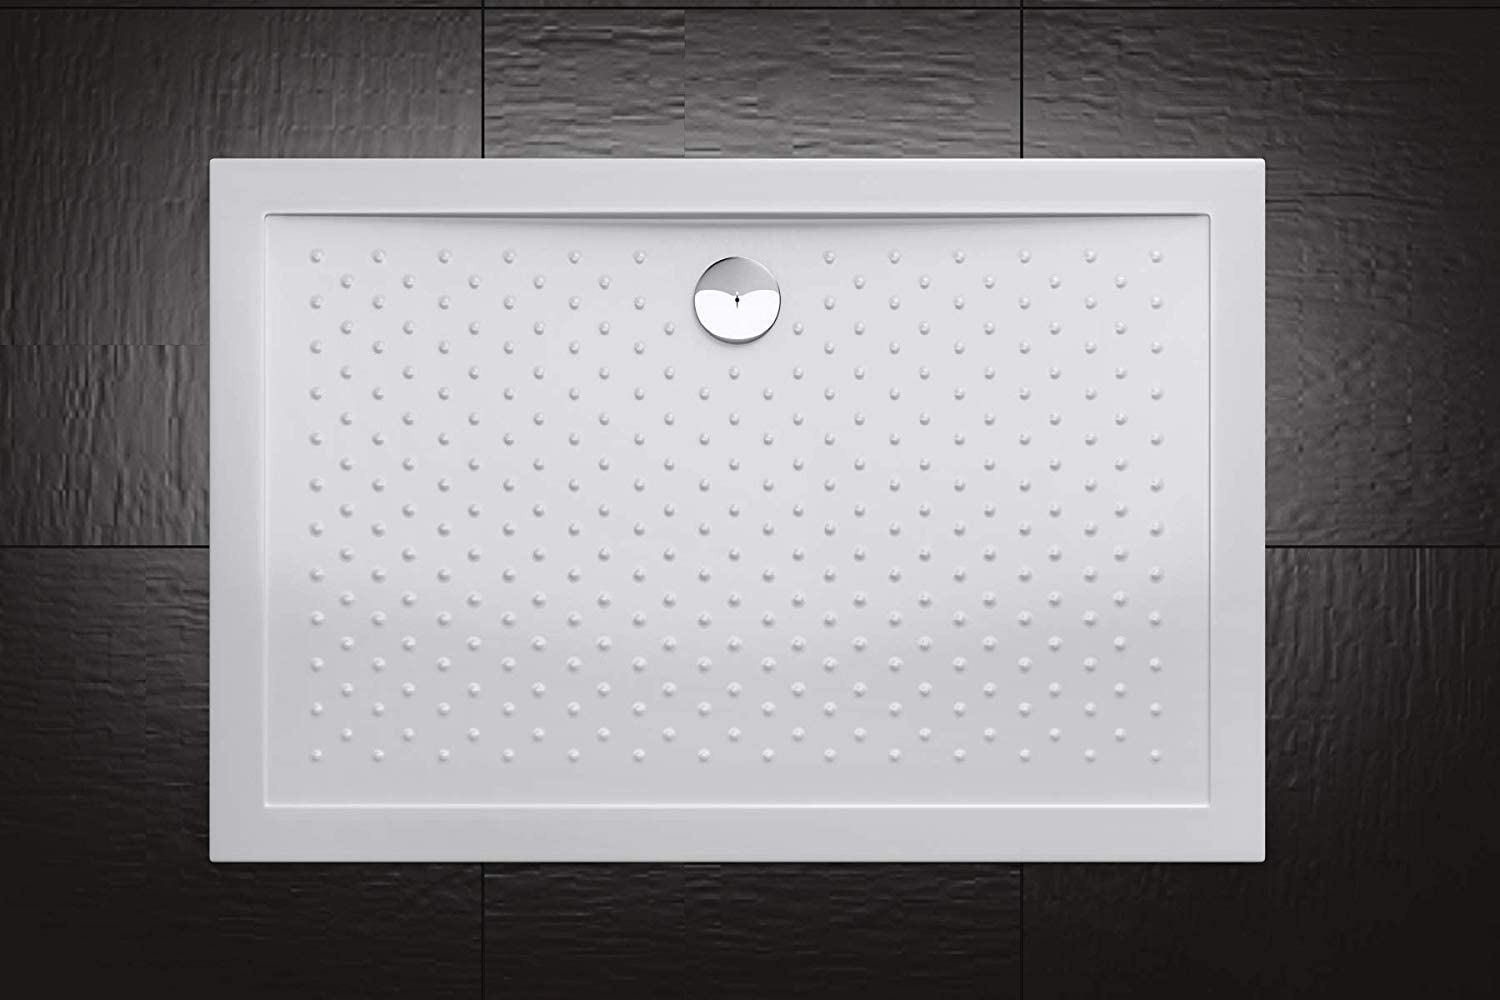 Include Free Waste Kit 900 x 800mm Rectangular Durovin Bathrooms Acrylic Shower Tray Anti Slip Surface Various Sizes